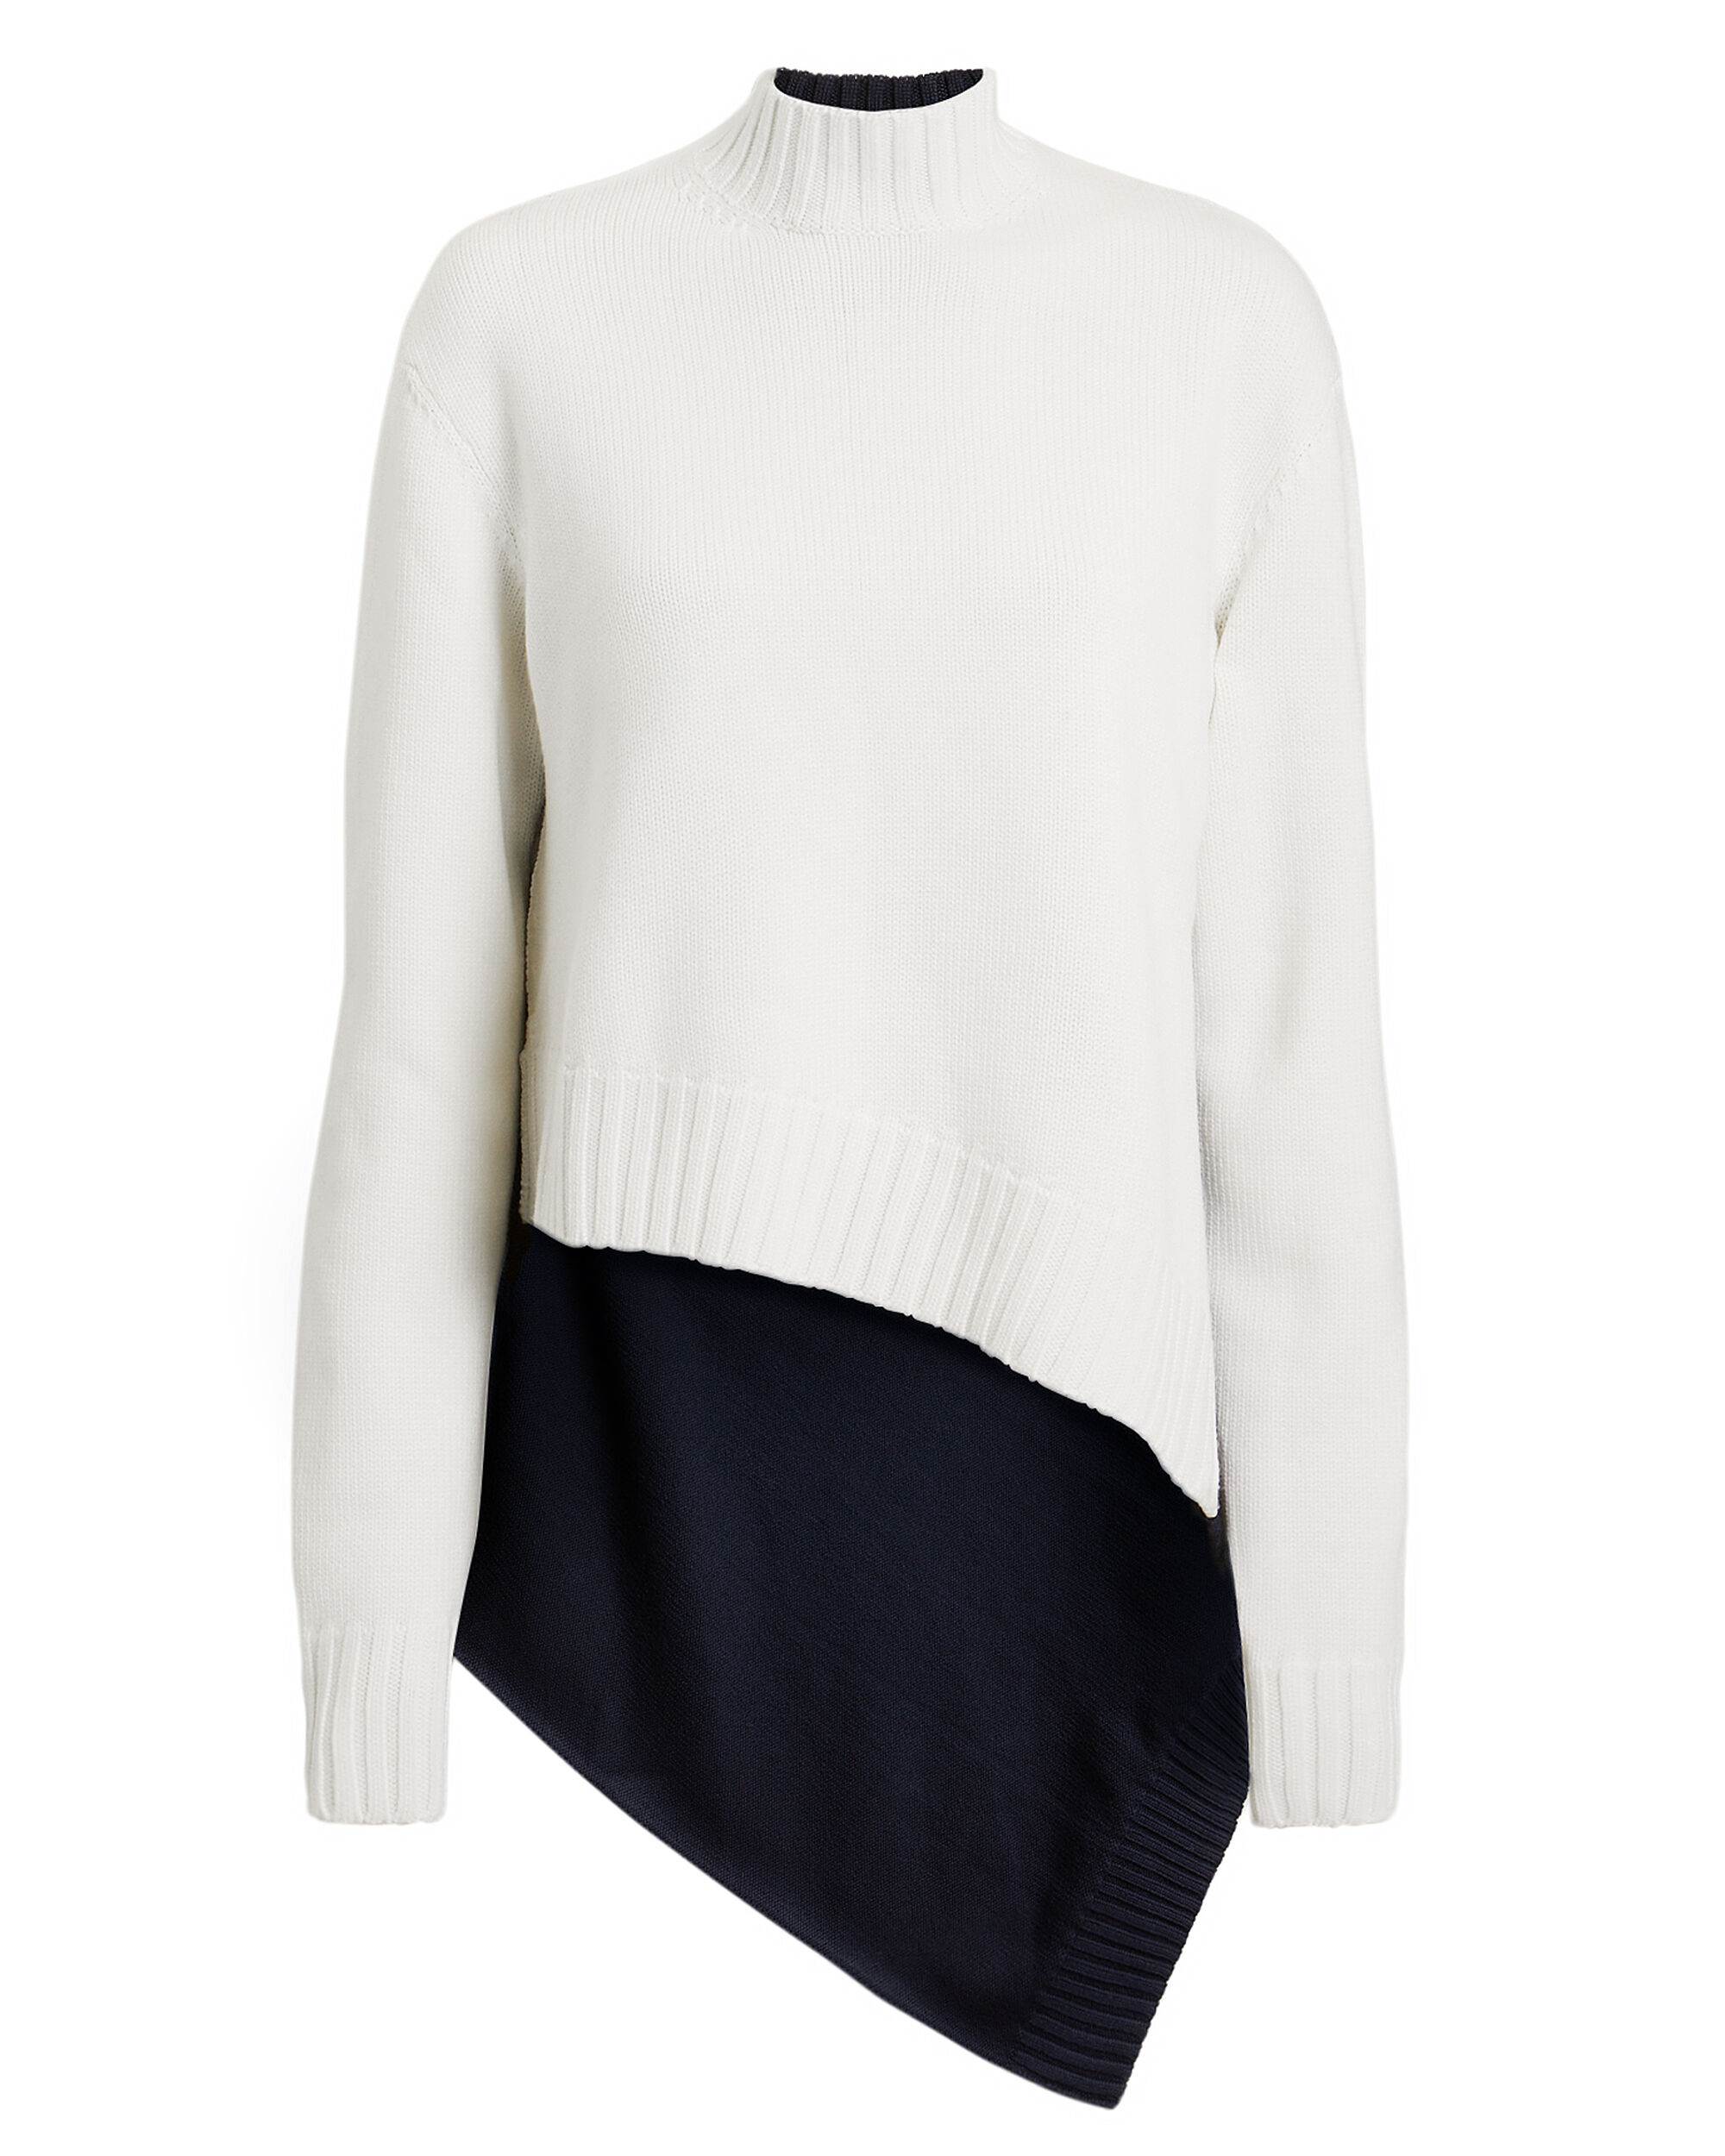 Cape Back Two-Tone Sweater, WHITE/NAVY, hi-res